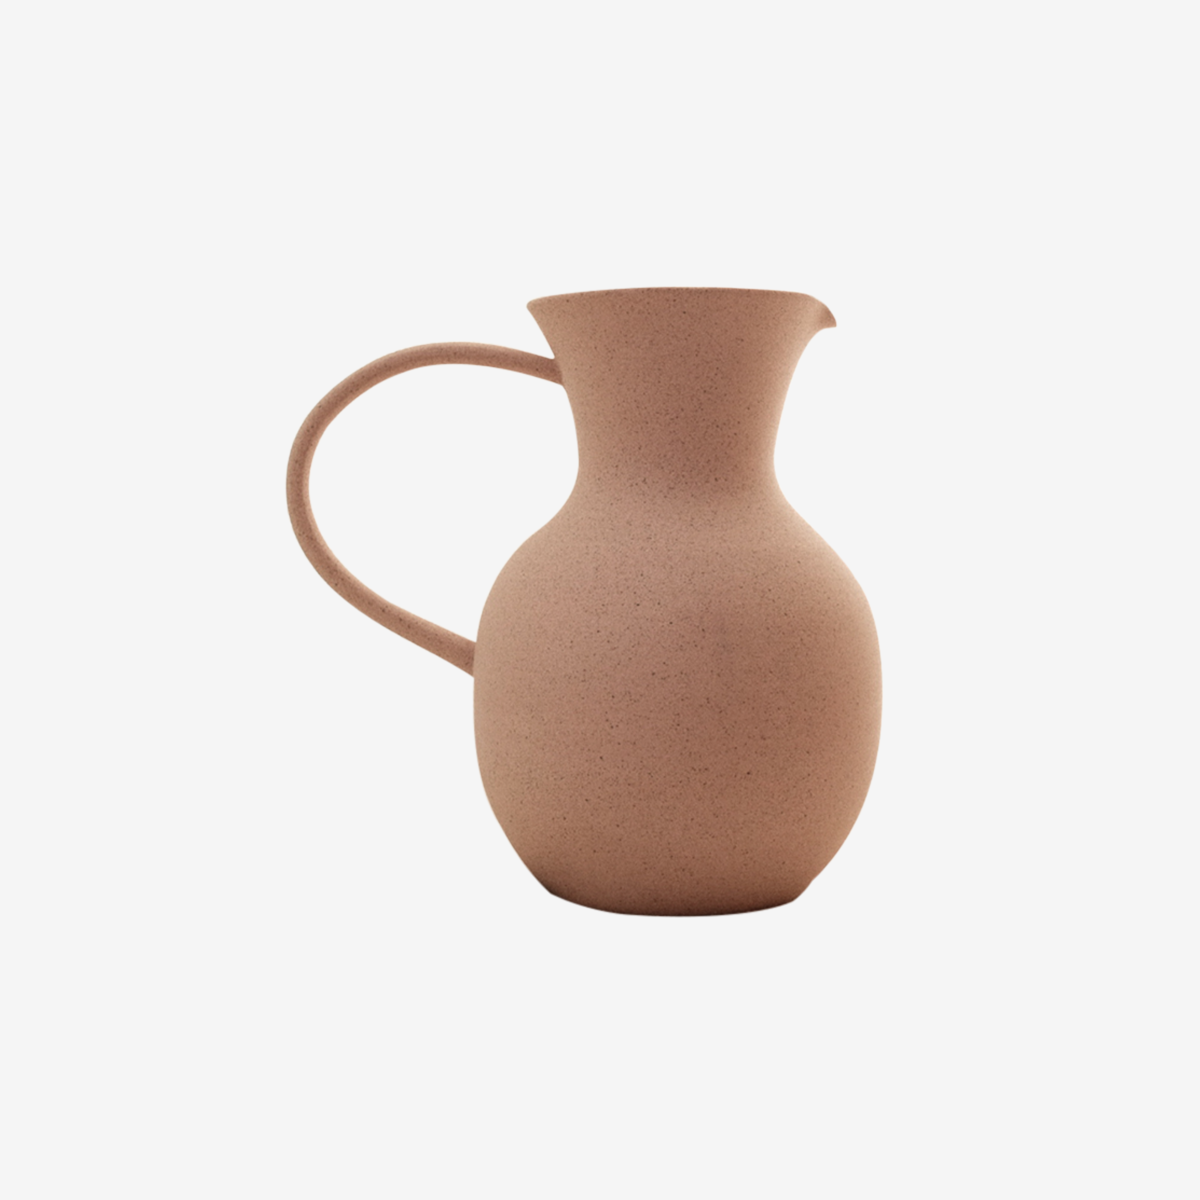 Jug shaped vase